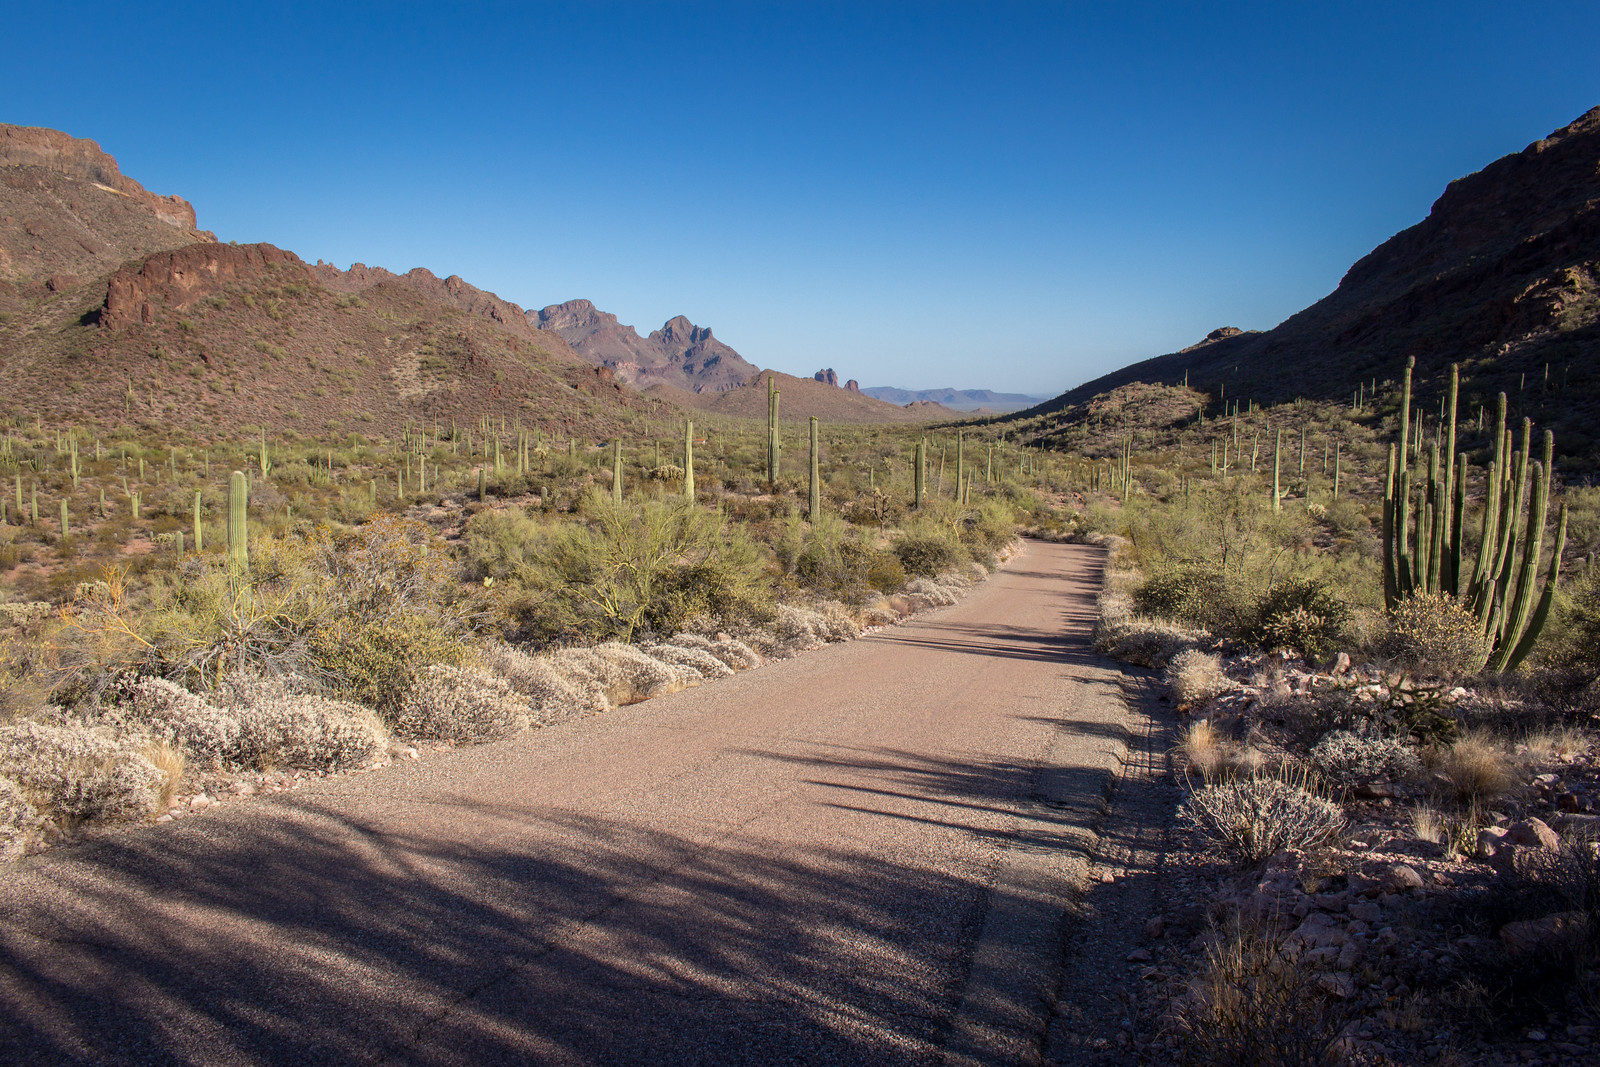 Long shadows on a dirt road leading down into the desert